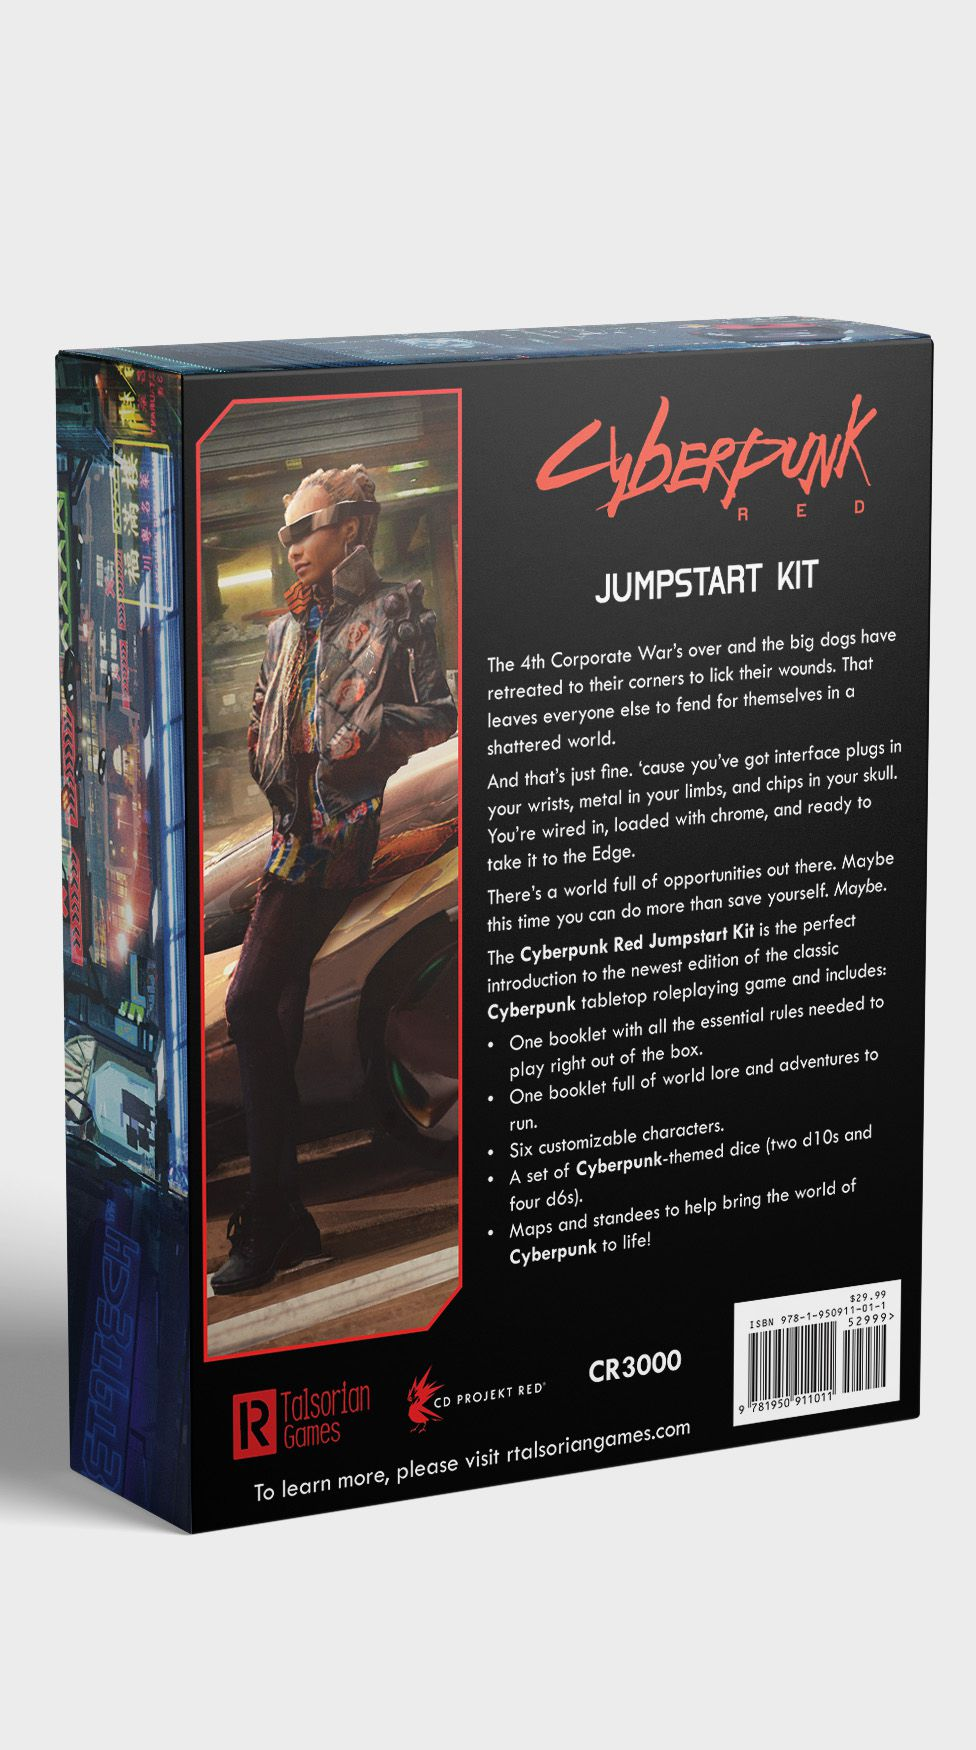 Cyberpunk 2077 tabletop RPG out this August, check out the cover art